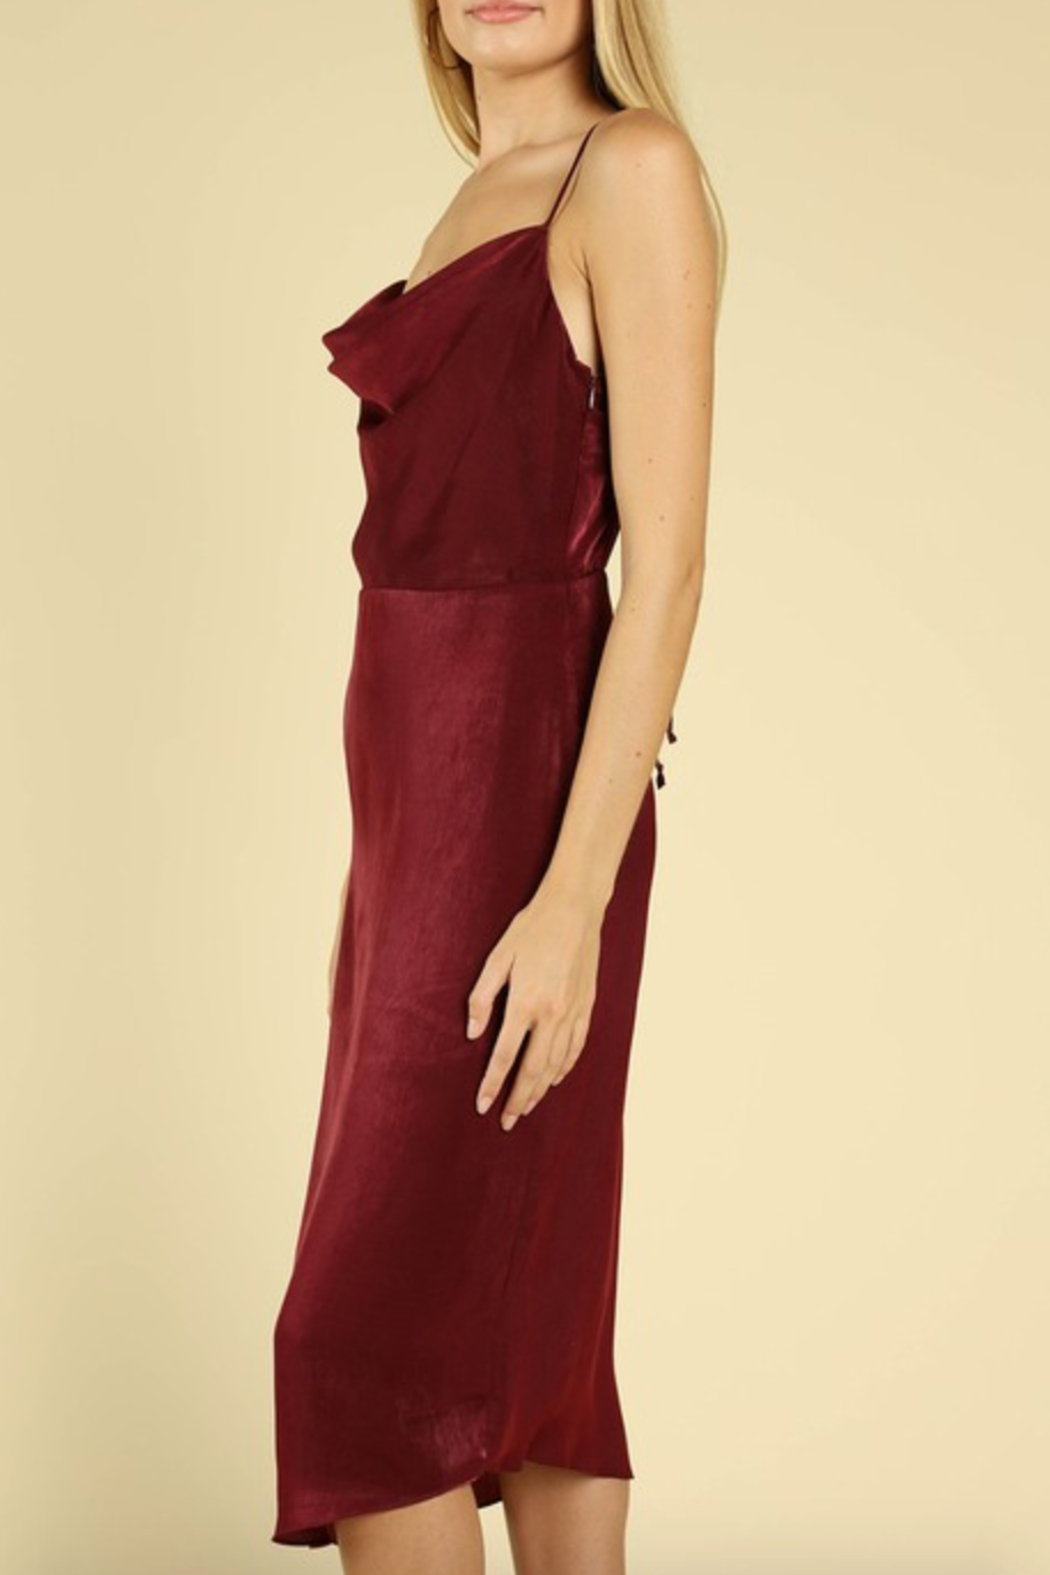 c59fd3a7e03f8 Honey Punch Cowl Slip Dress from Marina by y i clothing boutique ...